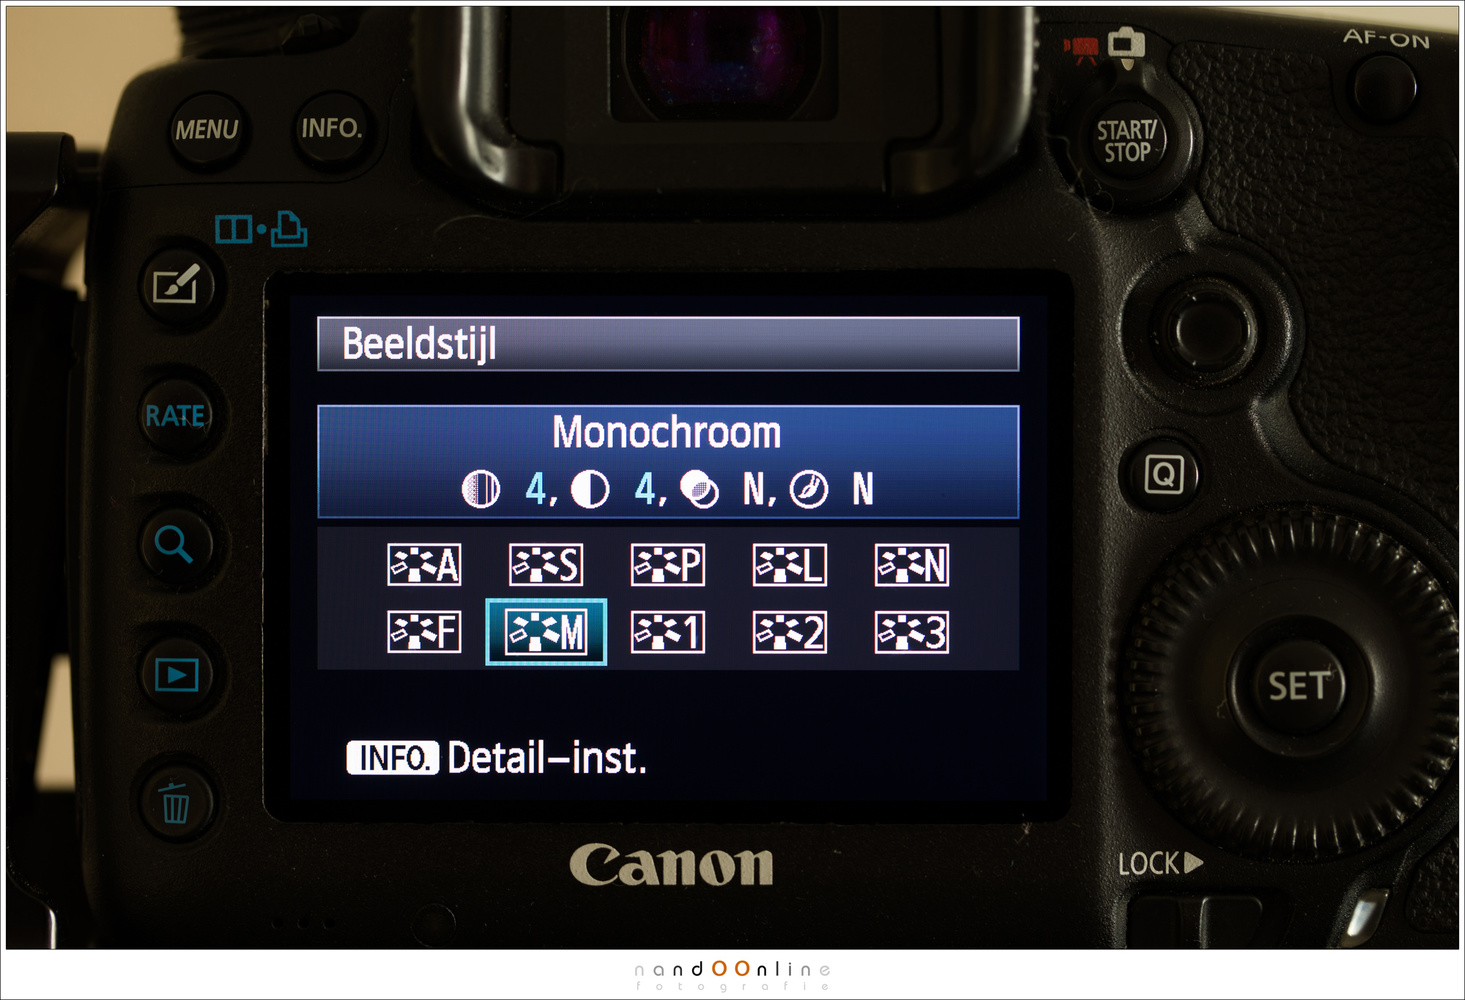 The monochrome picture style is one of the options Canon offers. This may vary with different camera brands. Fujifilm camera have also different black and white versions available, for example. You should check your camera for the possibilities..